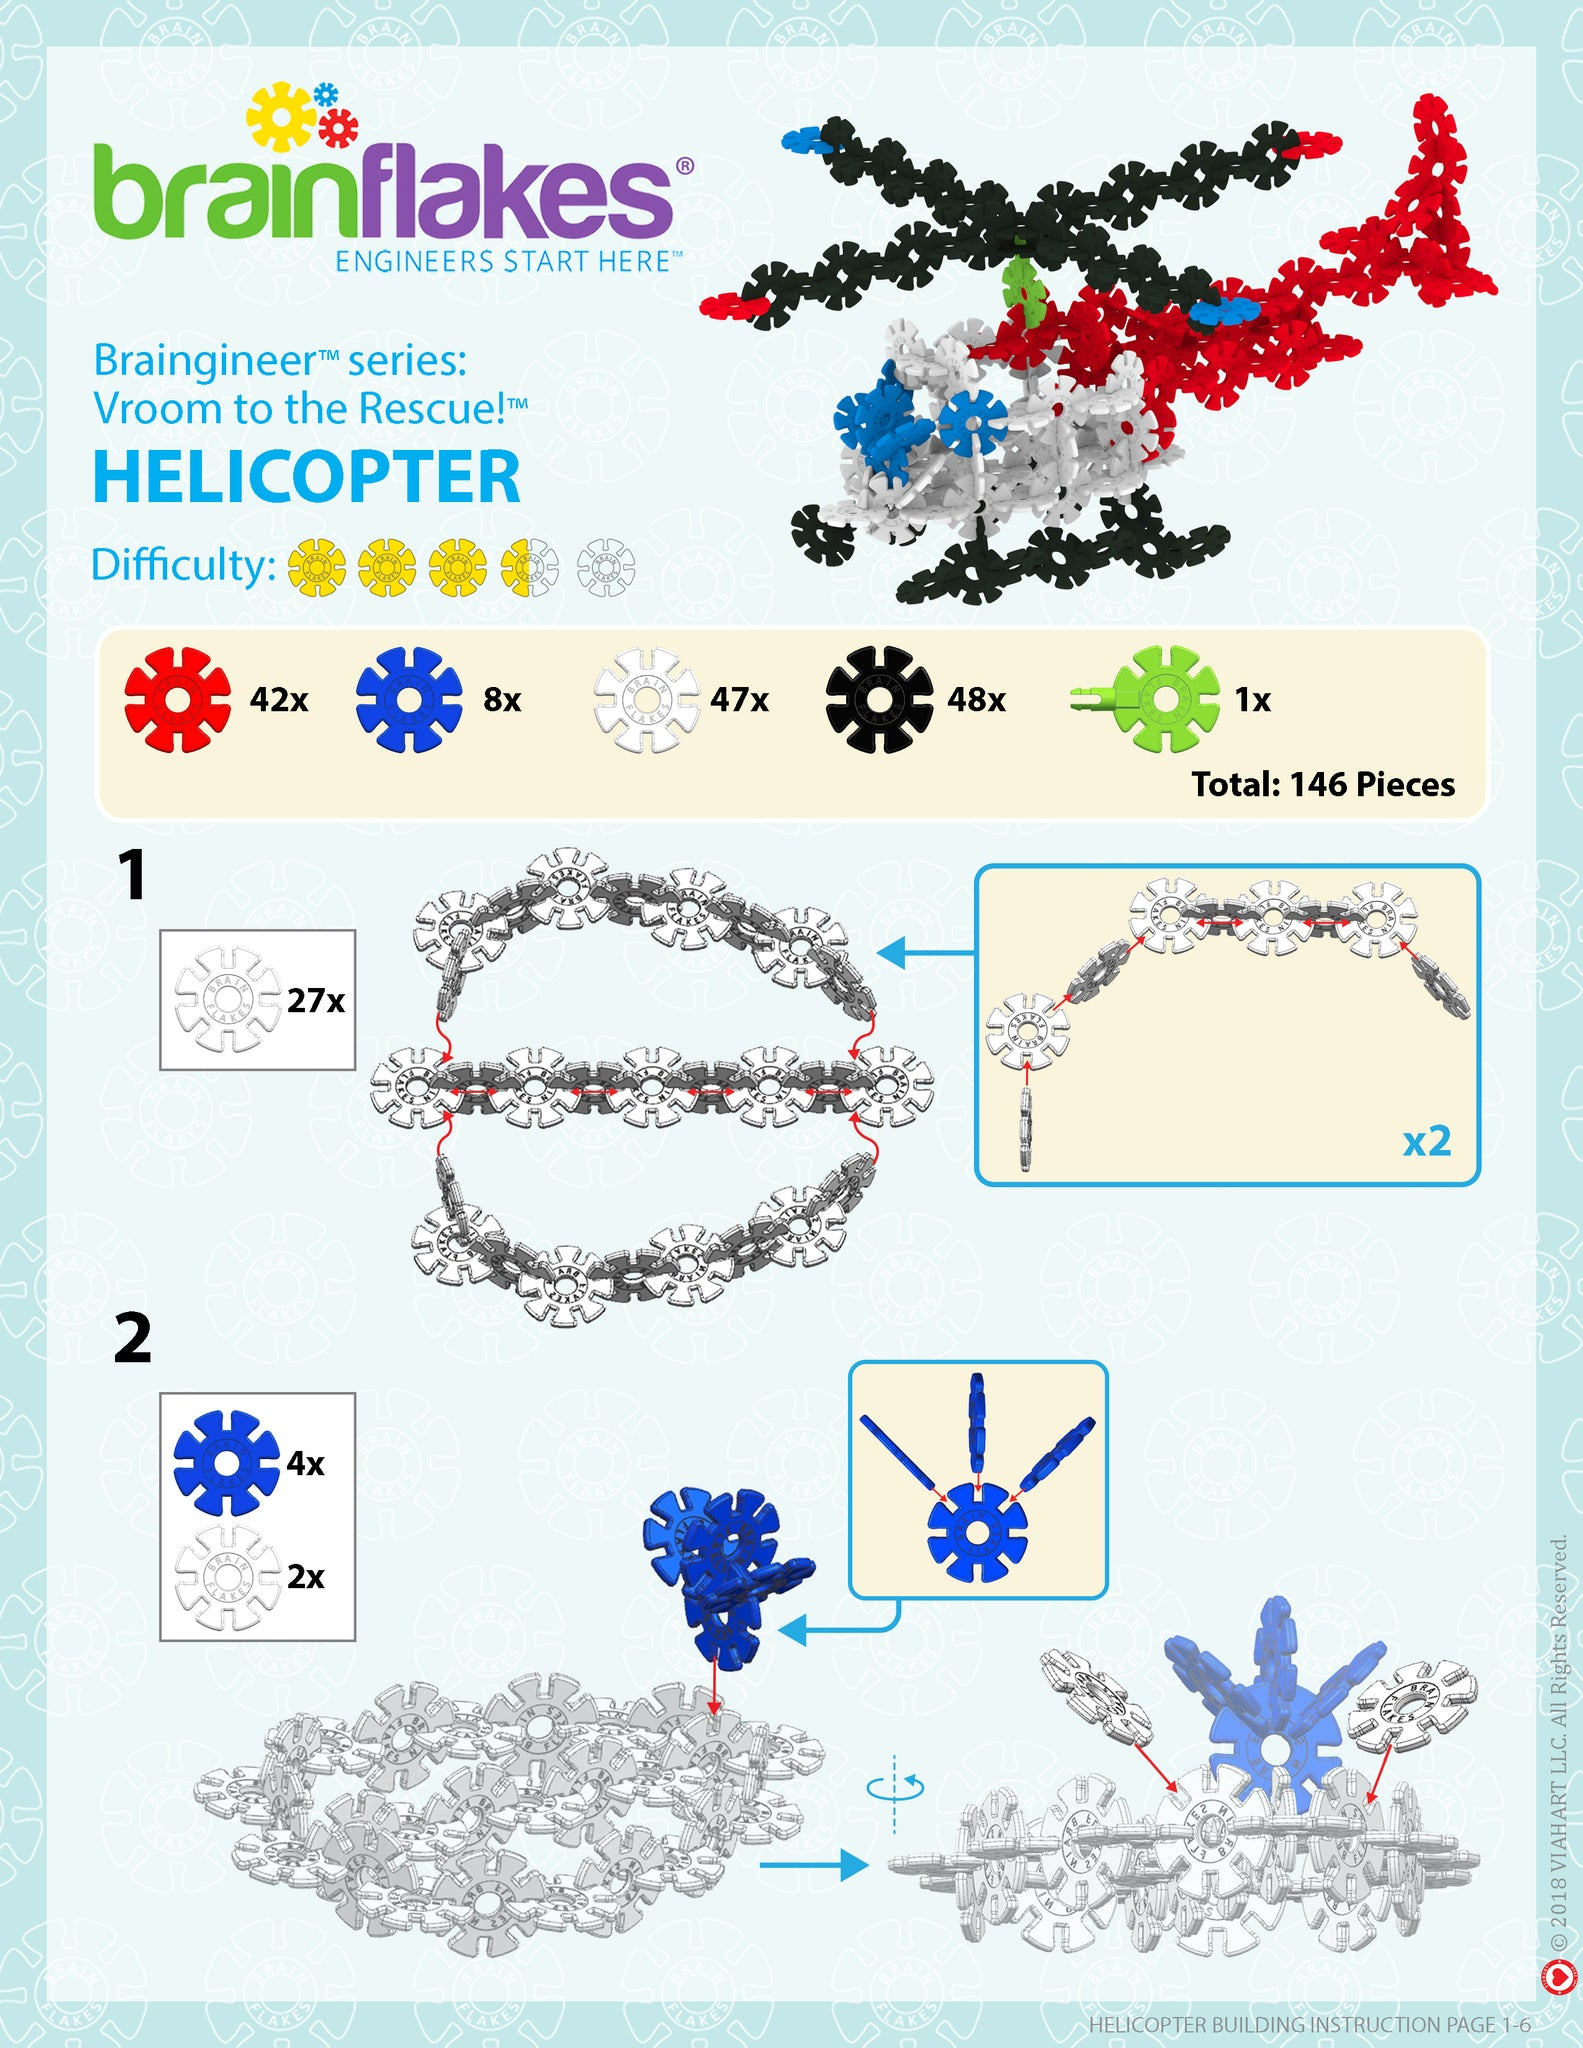 Brain Flakes Helicopter building instructions 1